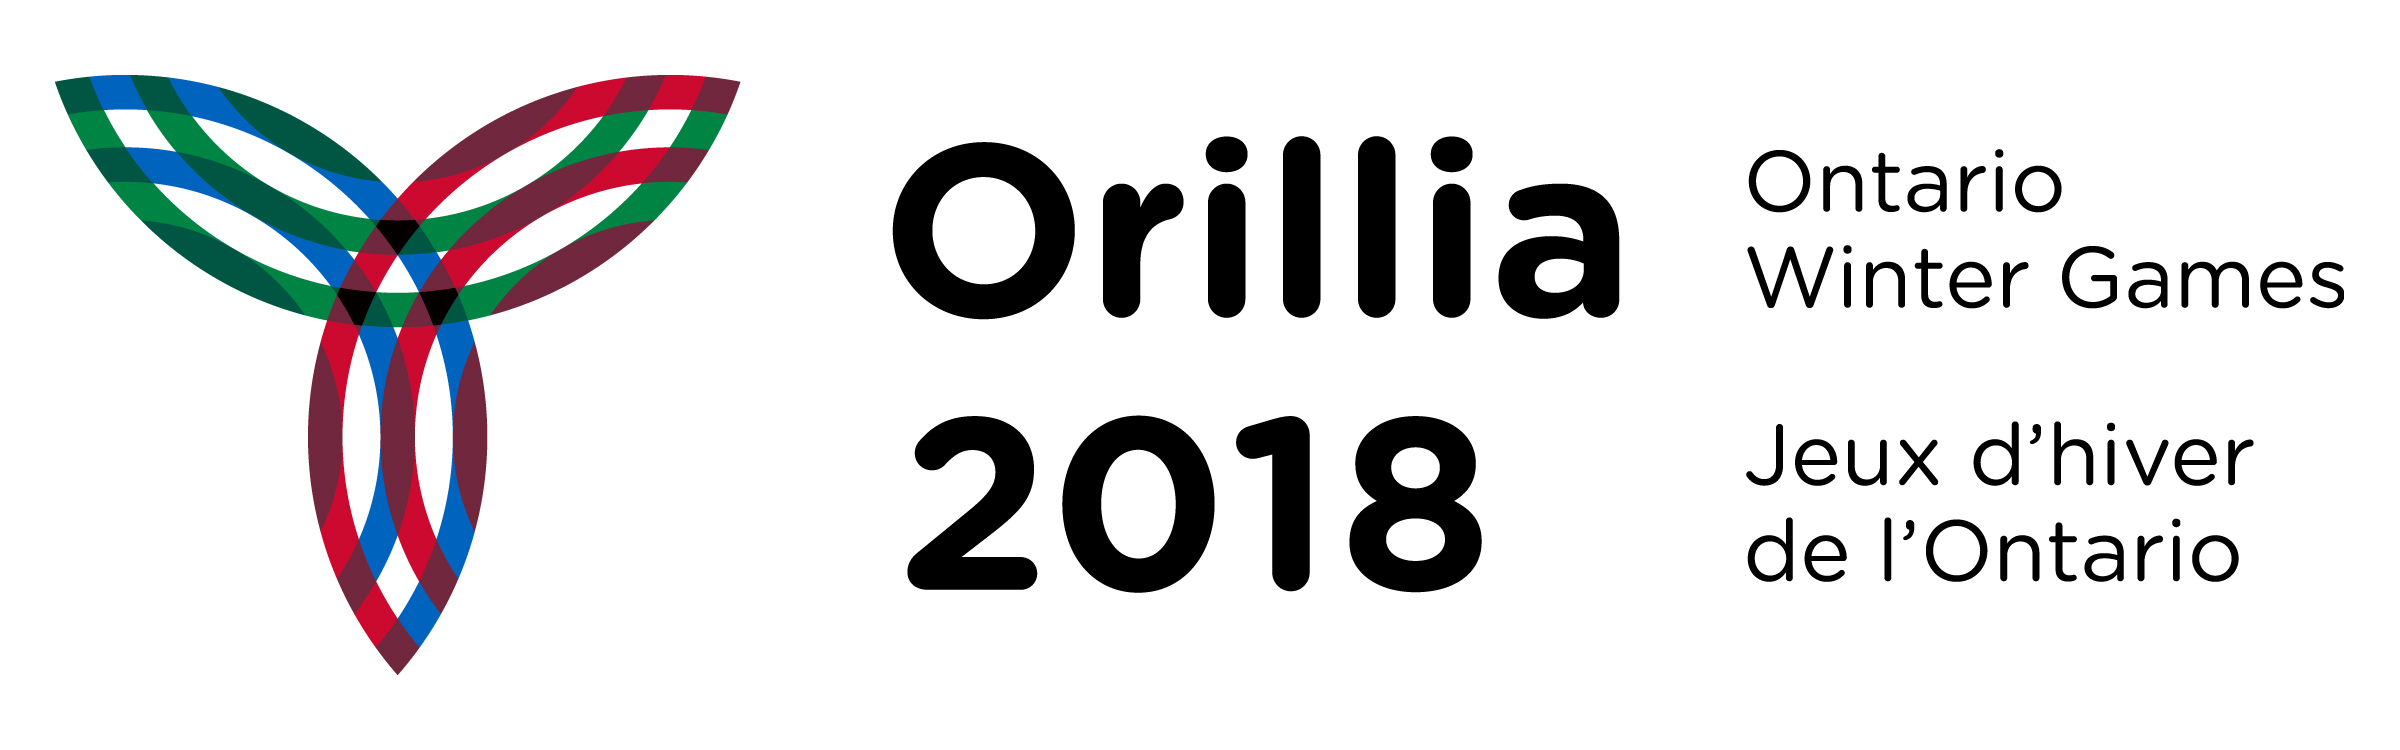 Orillia 2018 Ontario Winter Games Logo